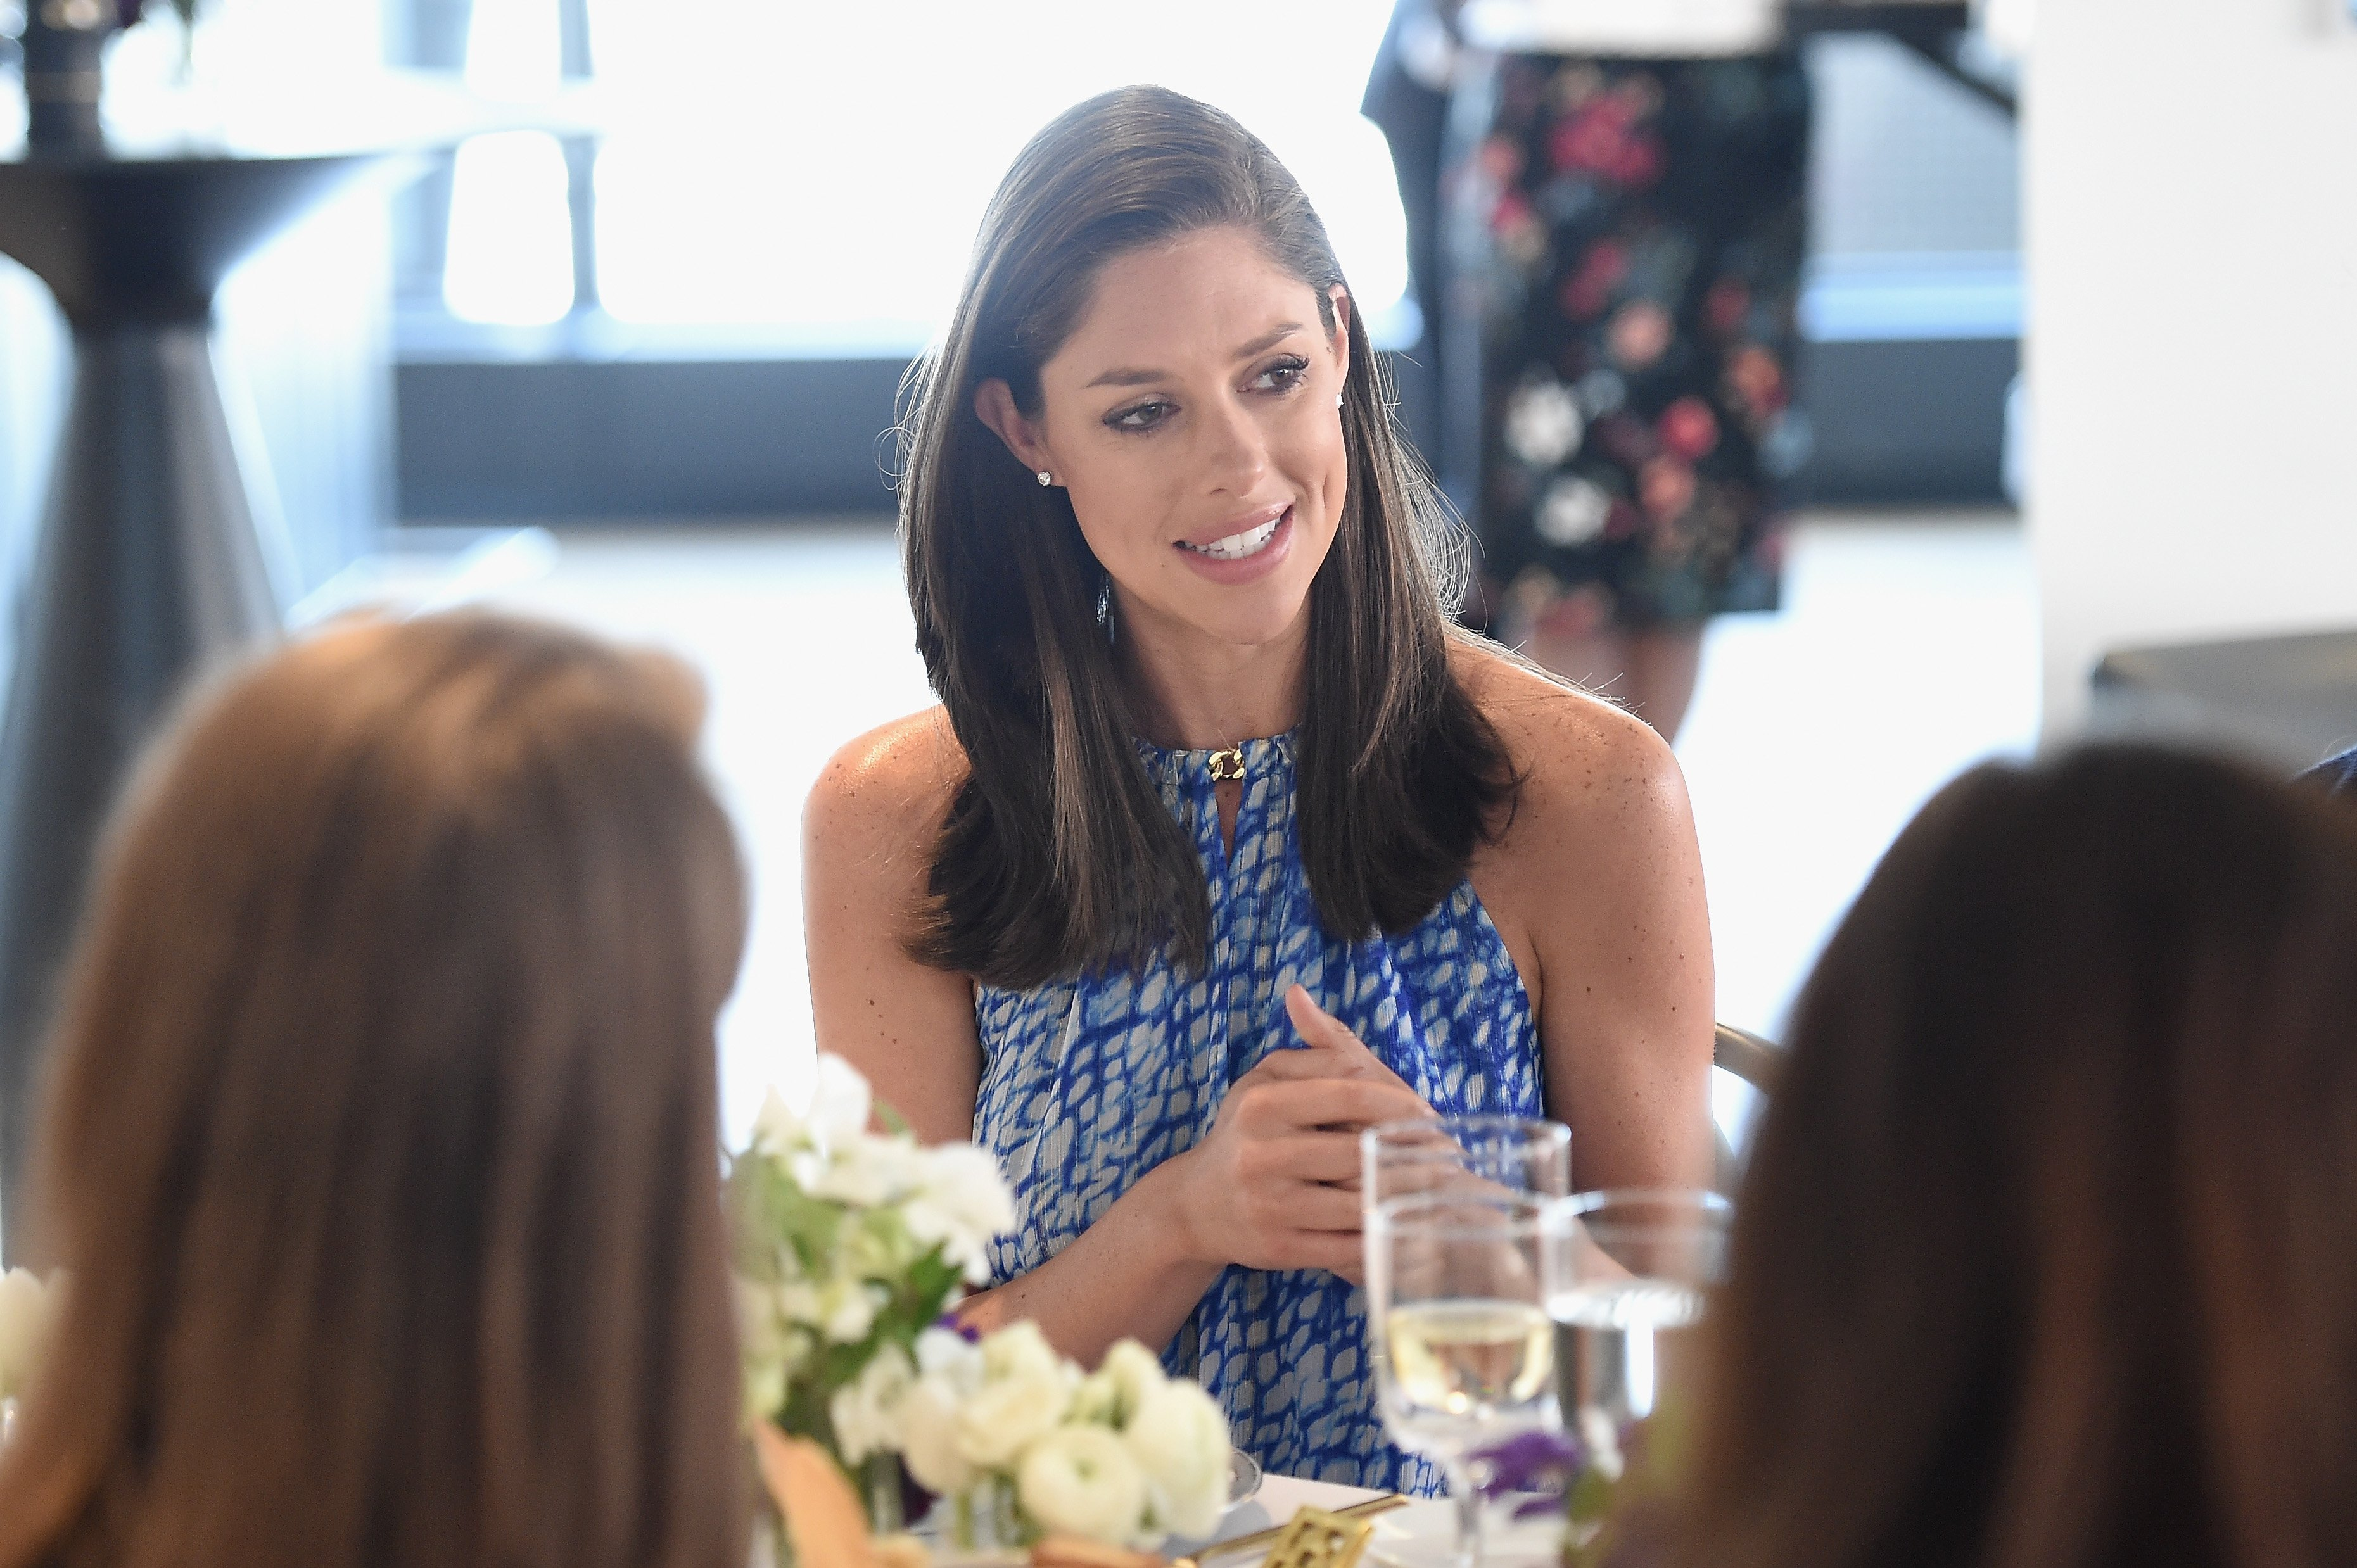 Journalist Abby Huntsman attends a luncheon hosted by Glamour and Facebook to discuss the 2016 election at Samsung 837 in NYC on July 11, 2016 | Photo: Getty Images